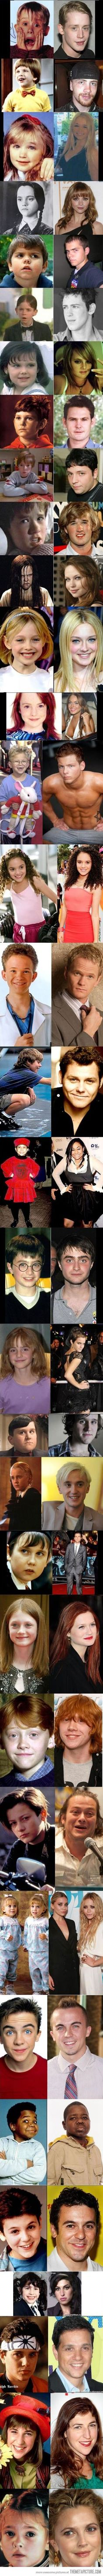 Celebrities then and now…